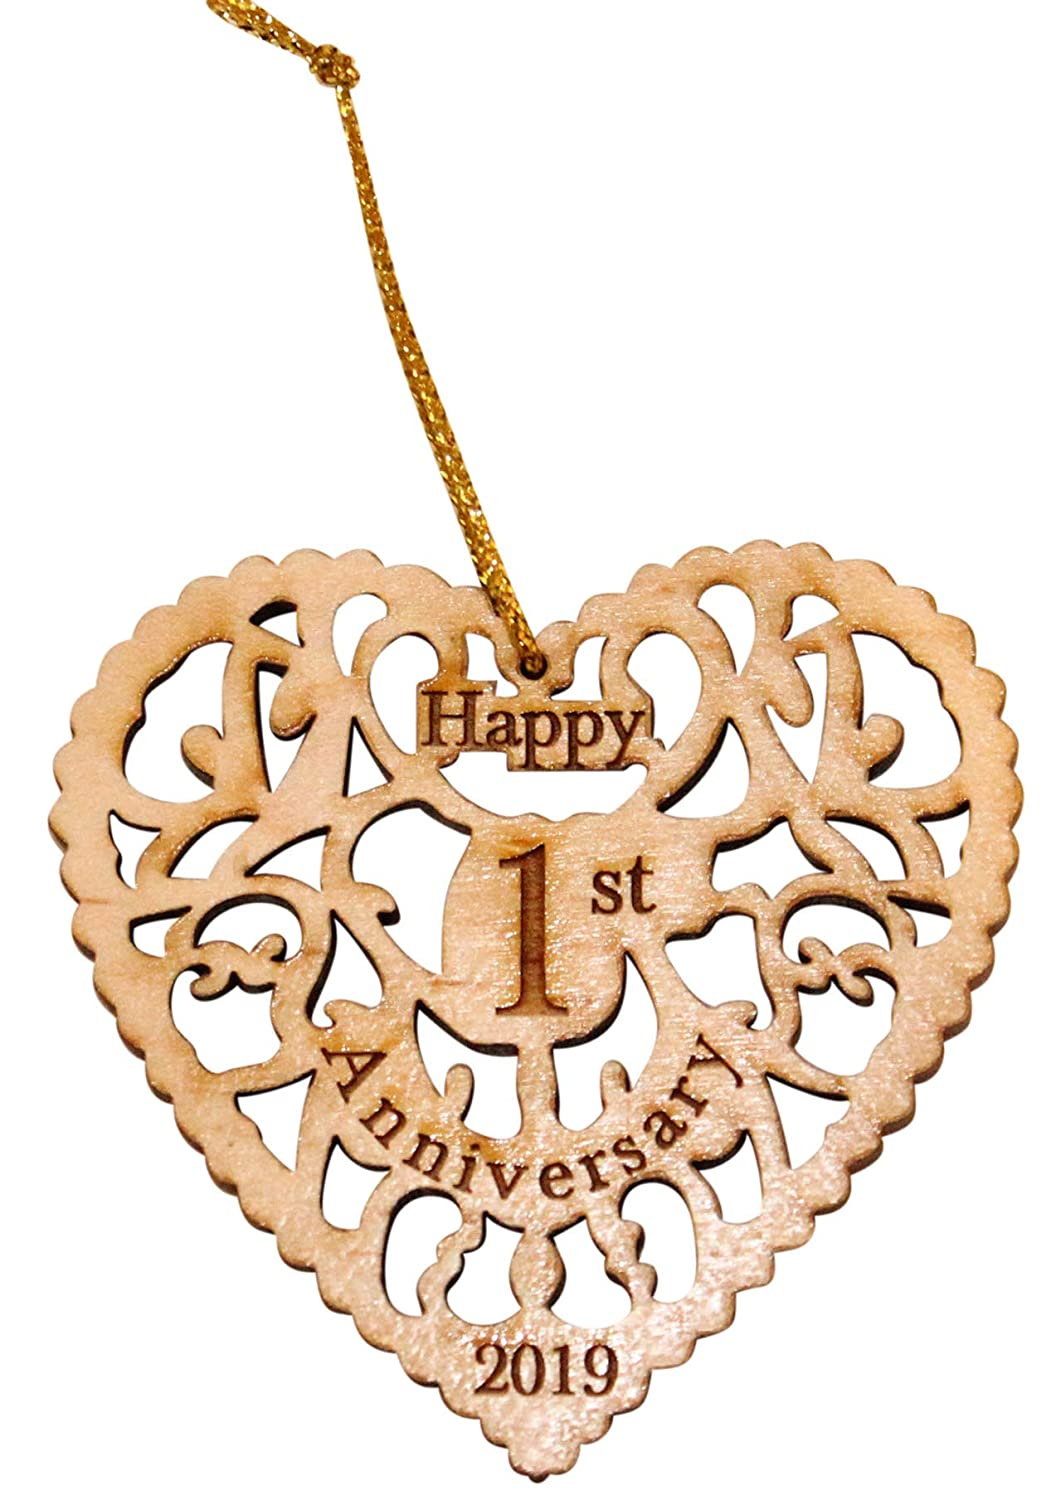 Buy Twisted Anchor Trading Co 1st Anniversary Ornament 2019 Heart Shaped Happy Anniversary Ornament Beautiful Laser Cut Wood Detail Comes In A Organza Gift Bag So It S Ready To